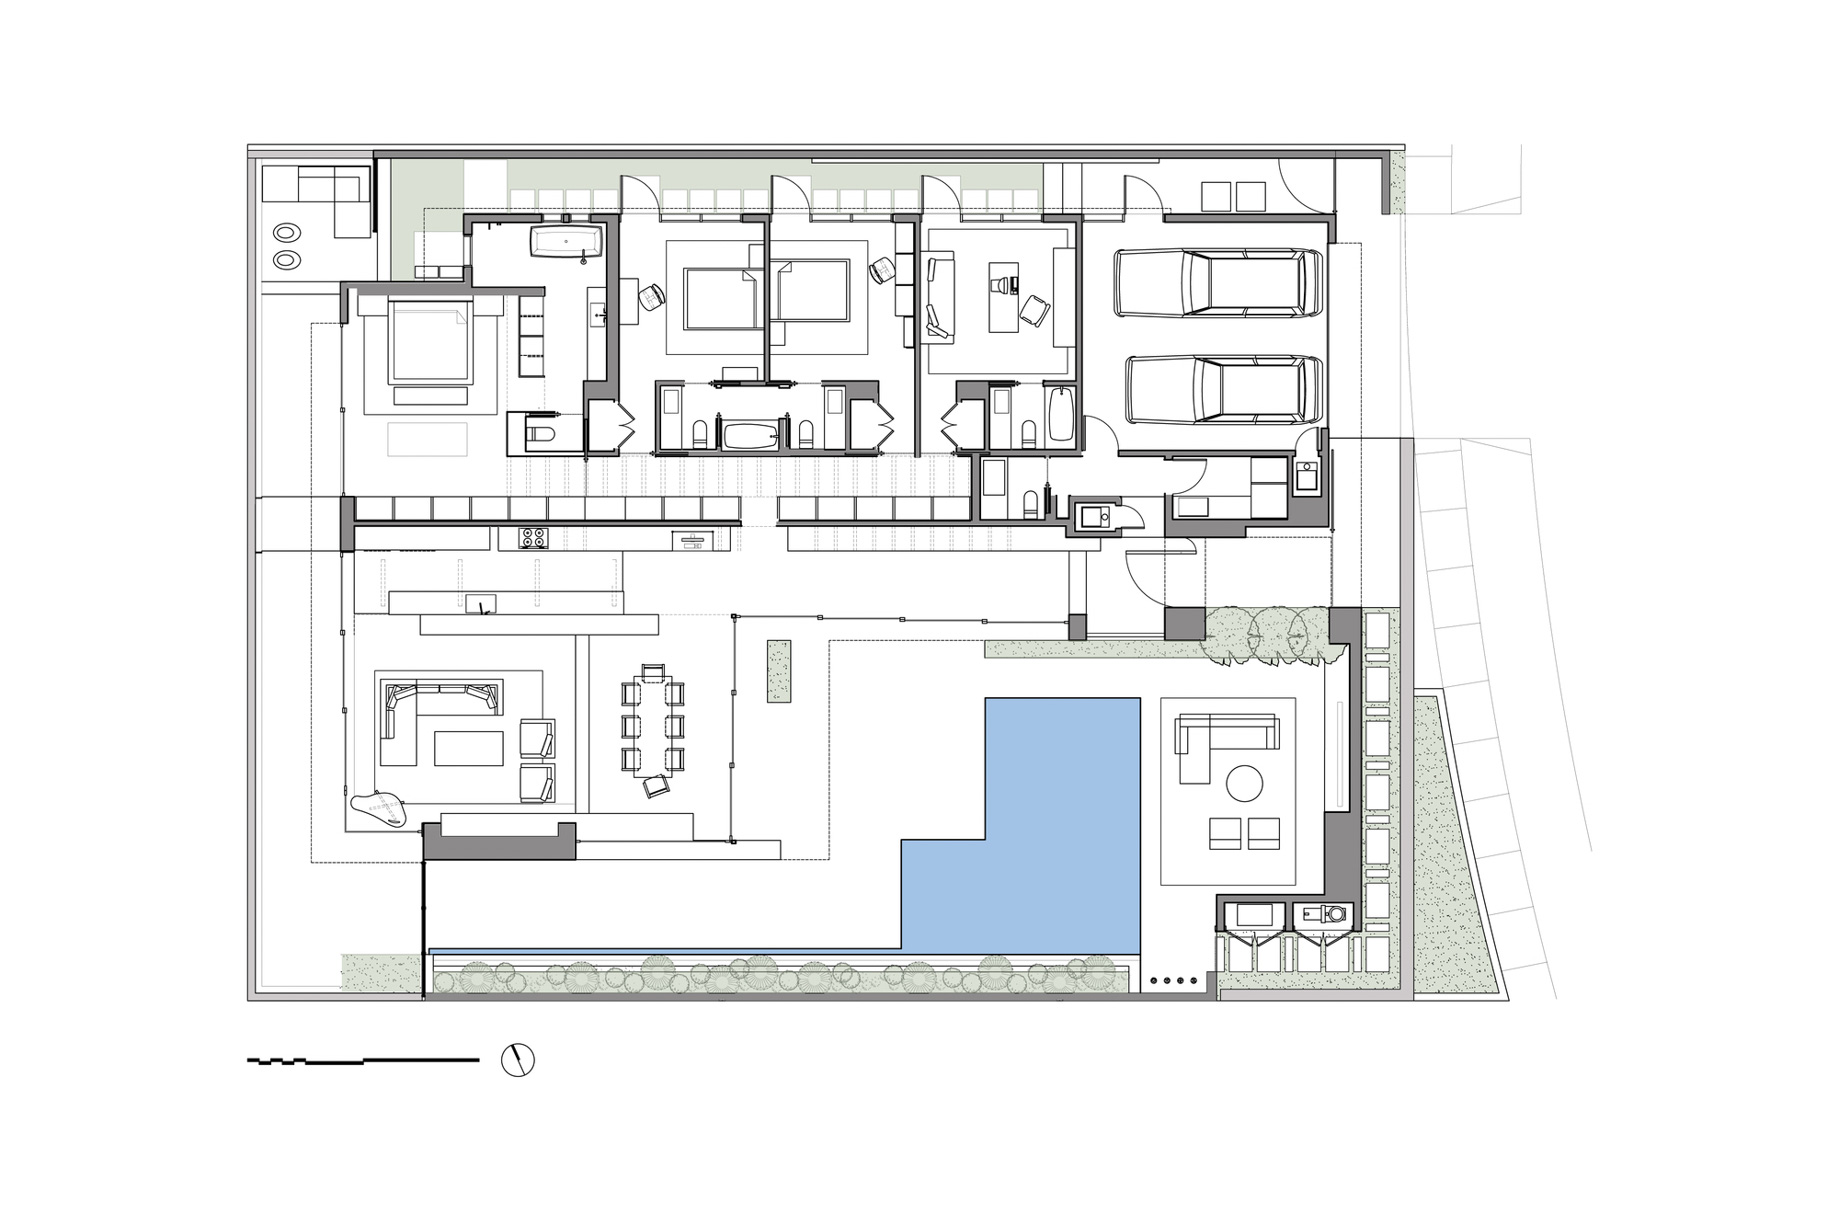 Floor Plan - Cormac Residence - 1027 White Sails Way, Corona del Mar, CA, USA